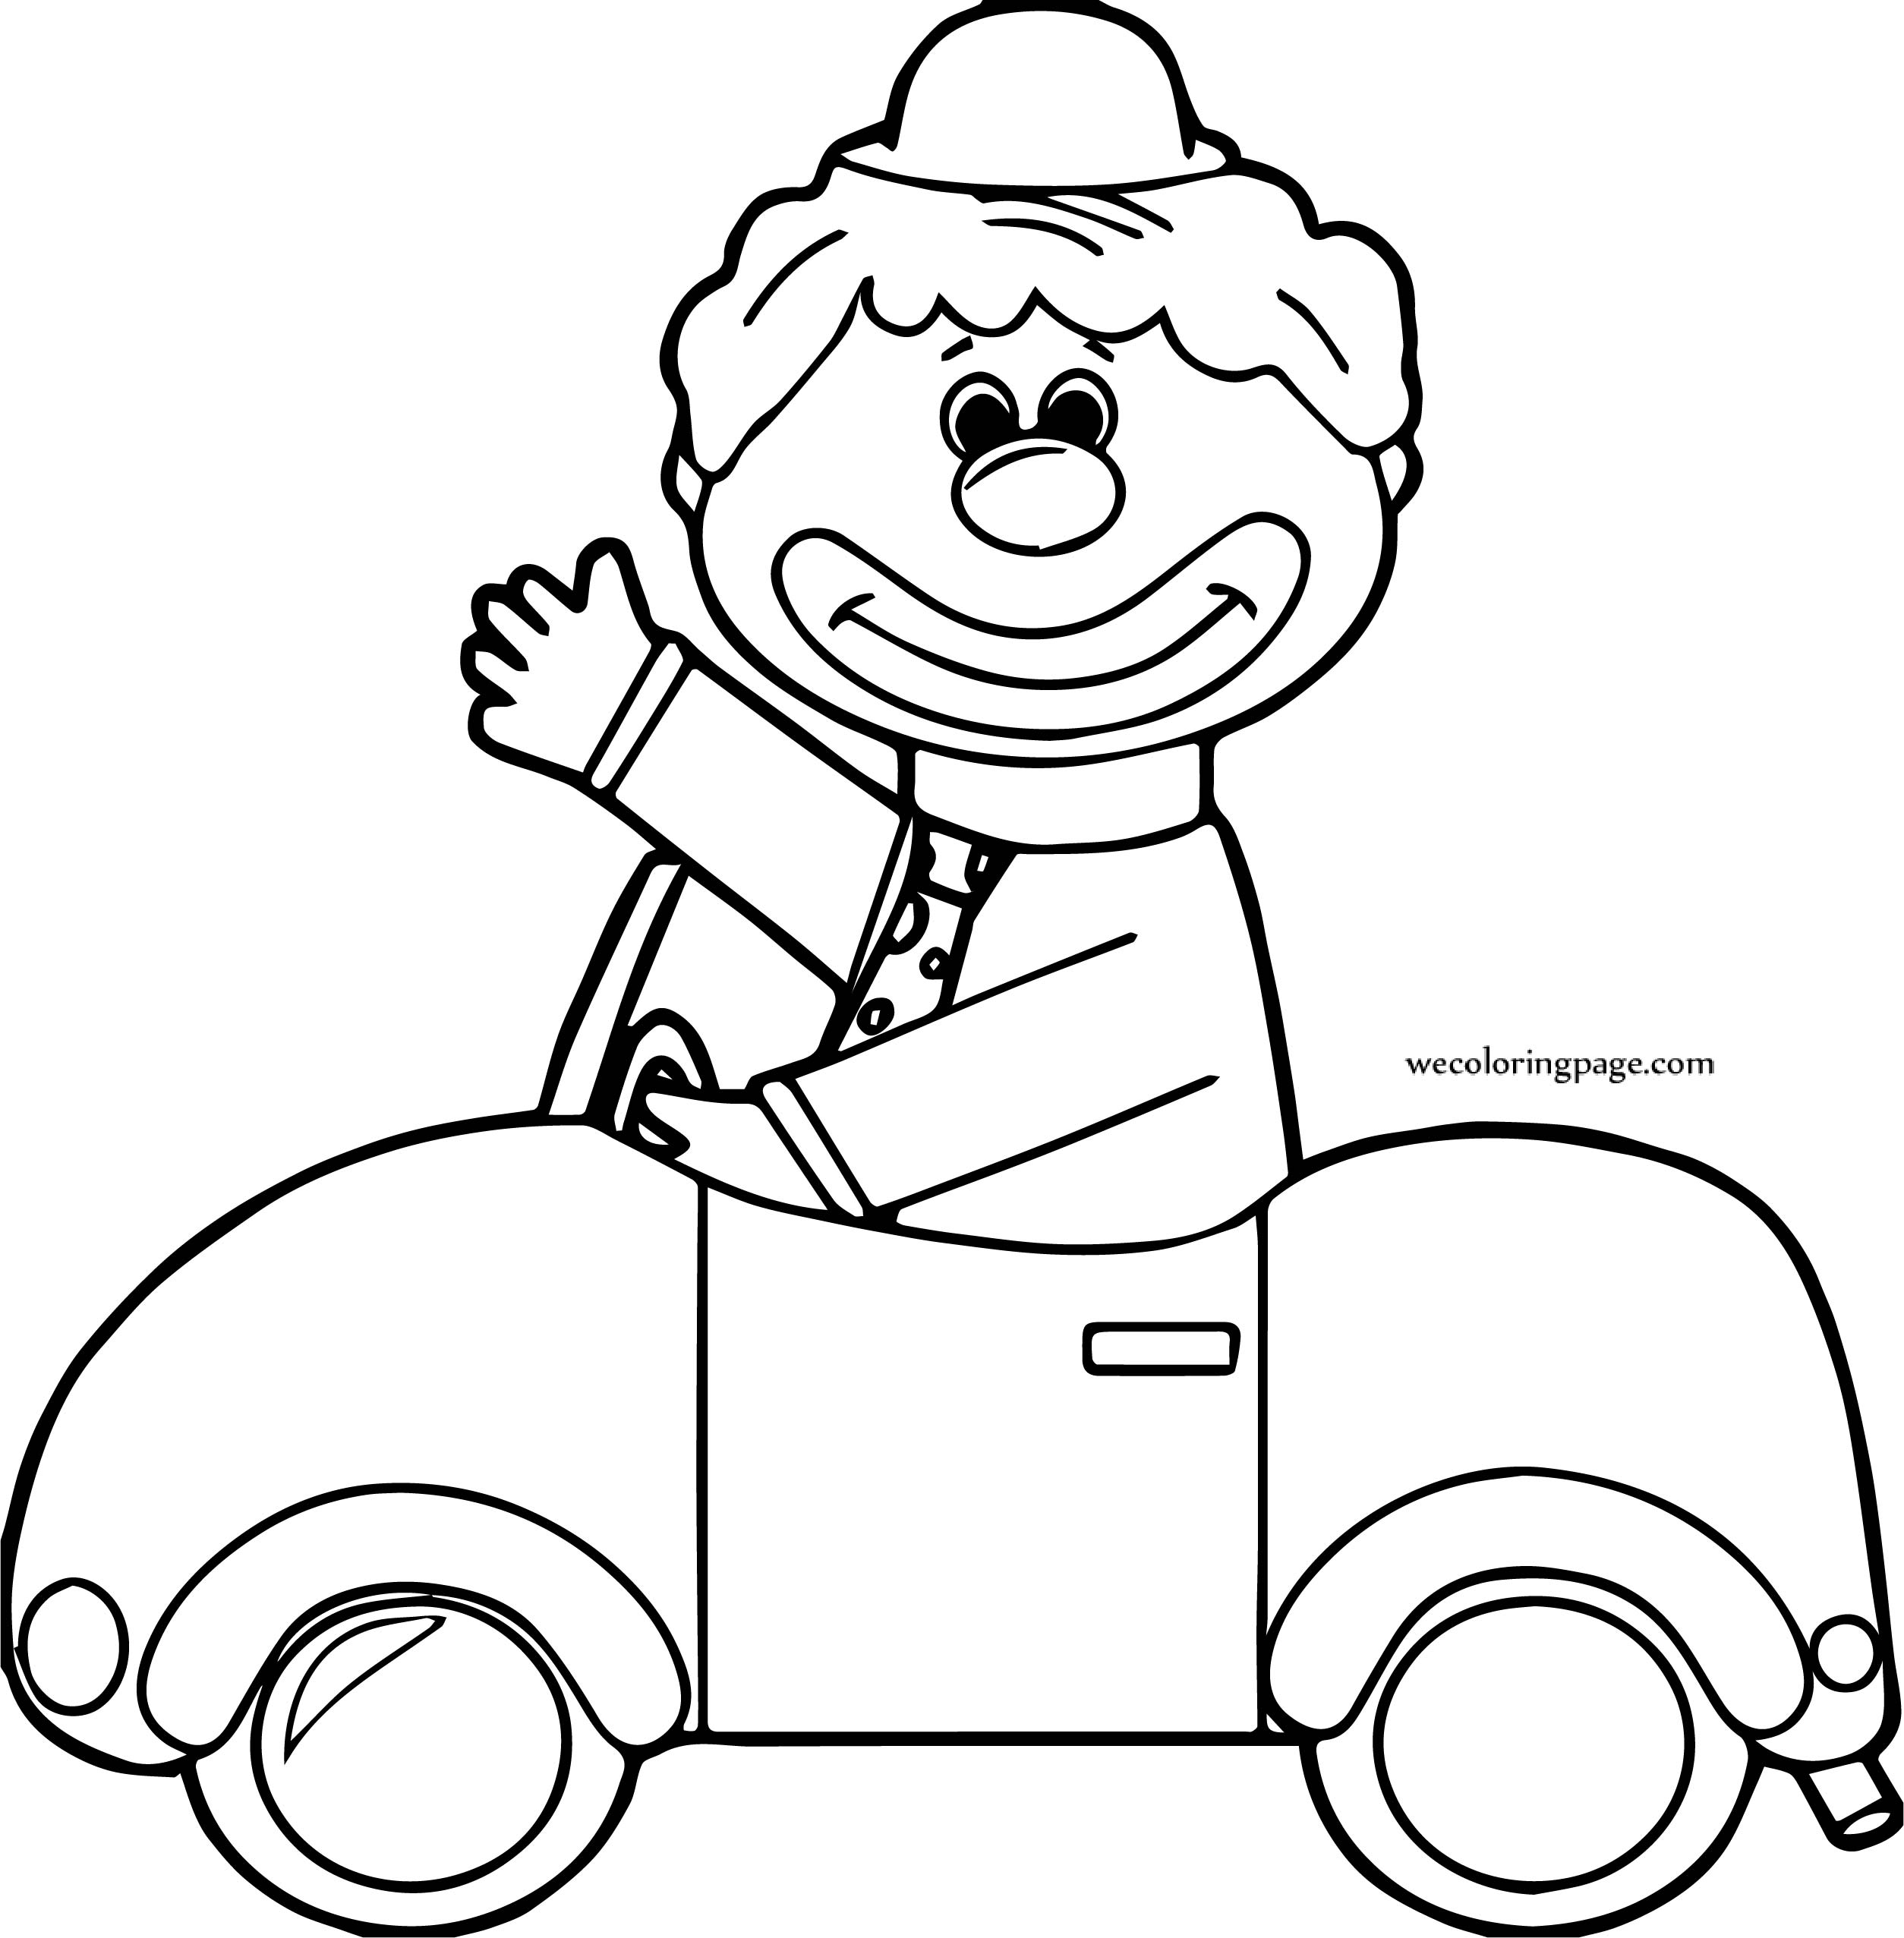 Clown Riding Car Coloring Page | Wecoloringpage.com